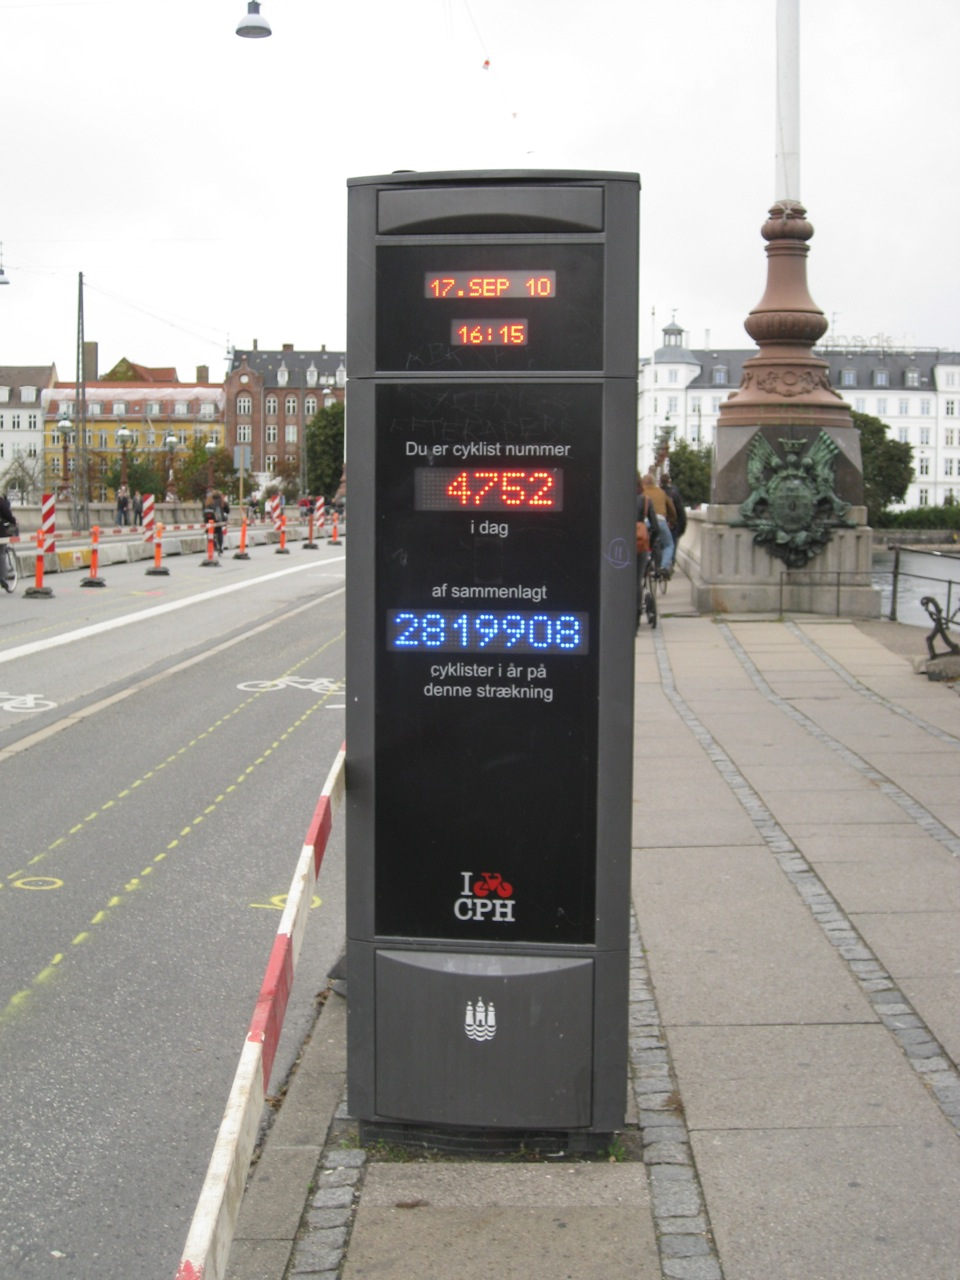 Public municipal counter in Copenhagen records the number of cyclists passing a specific point